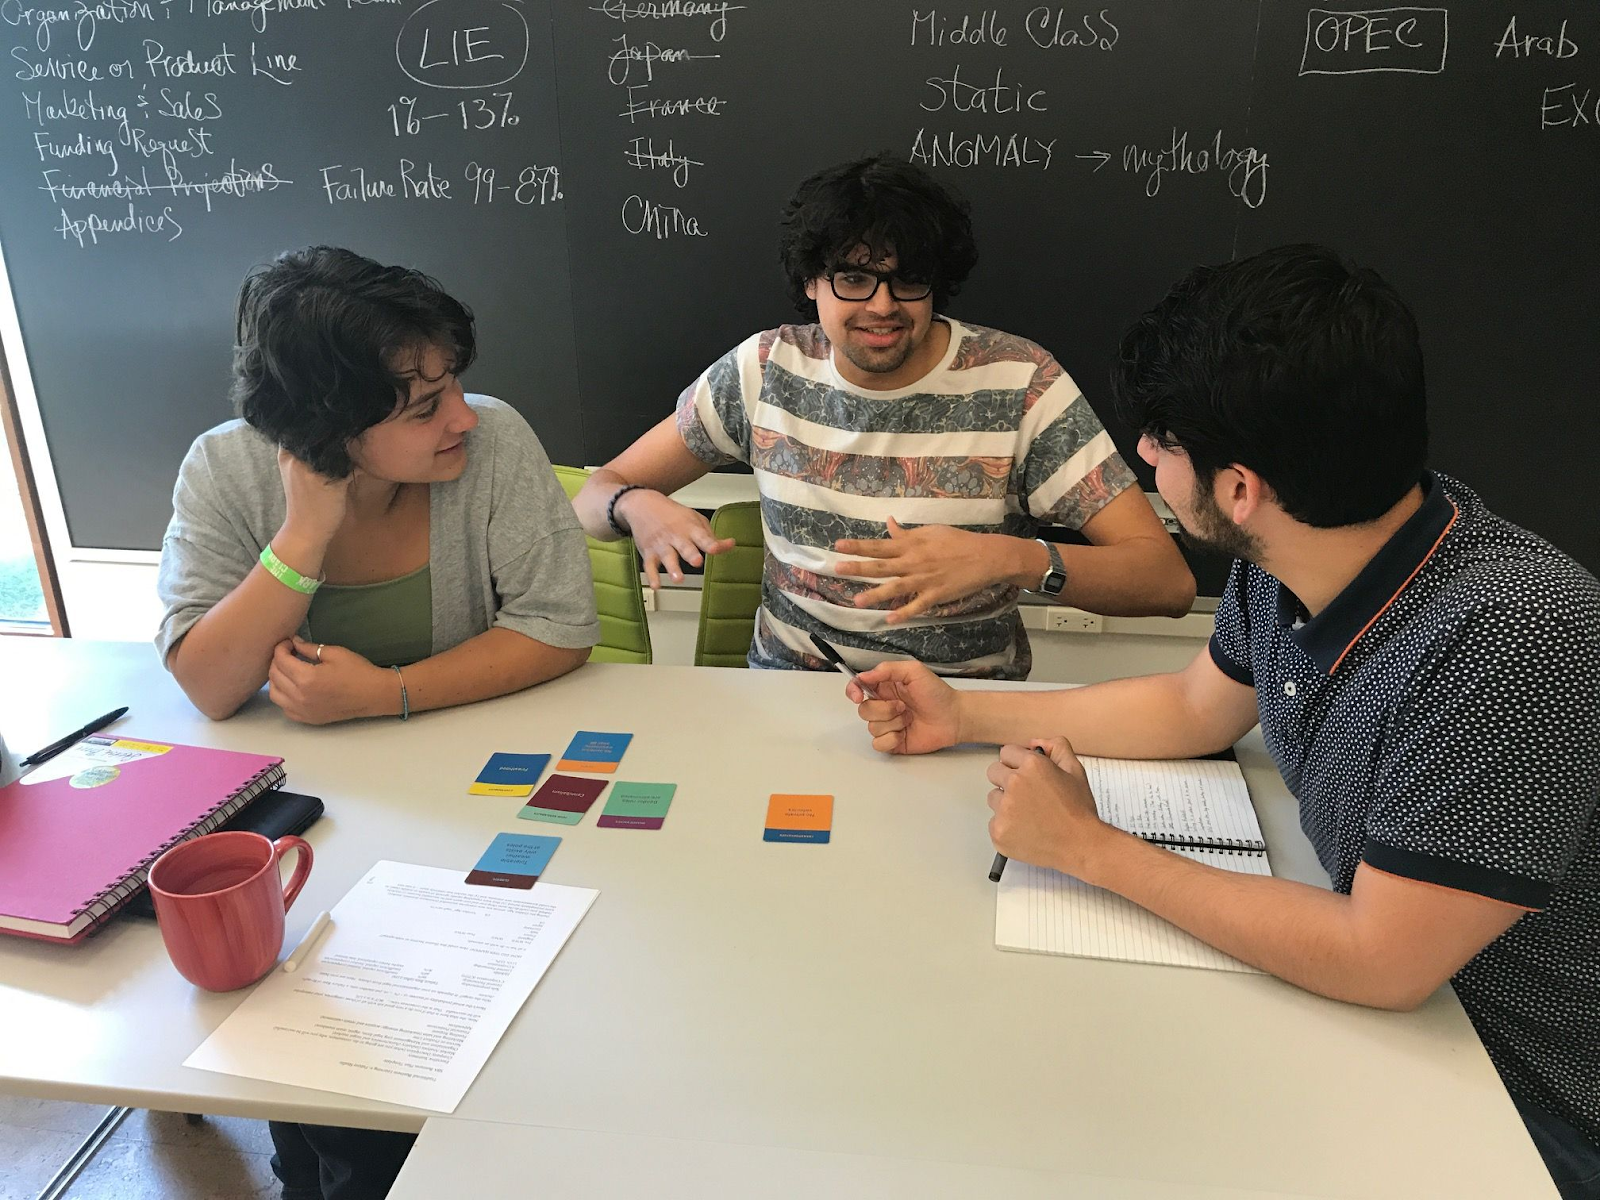 Image from past workshop: three students in conversation with cards on table.